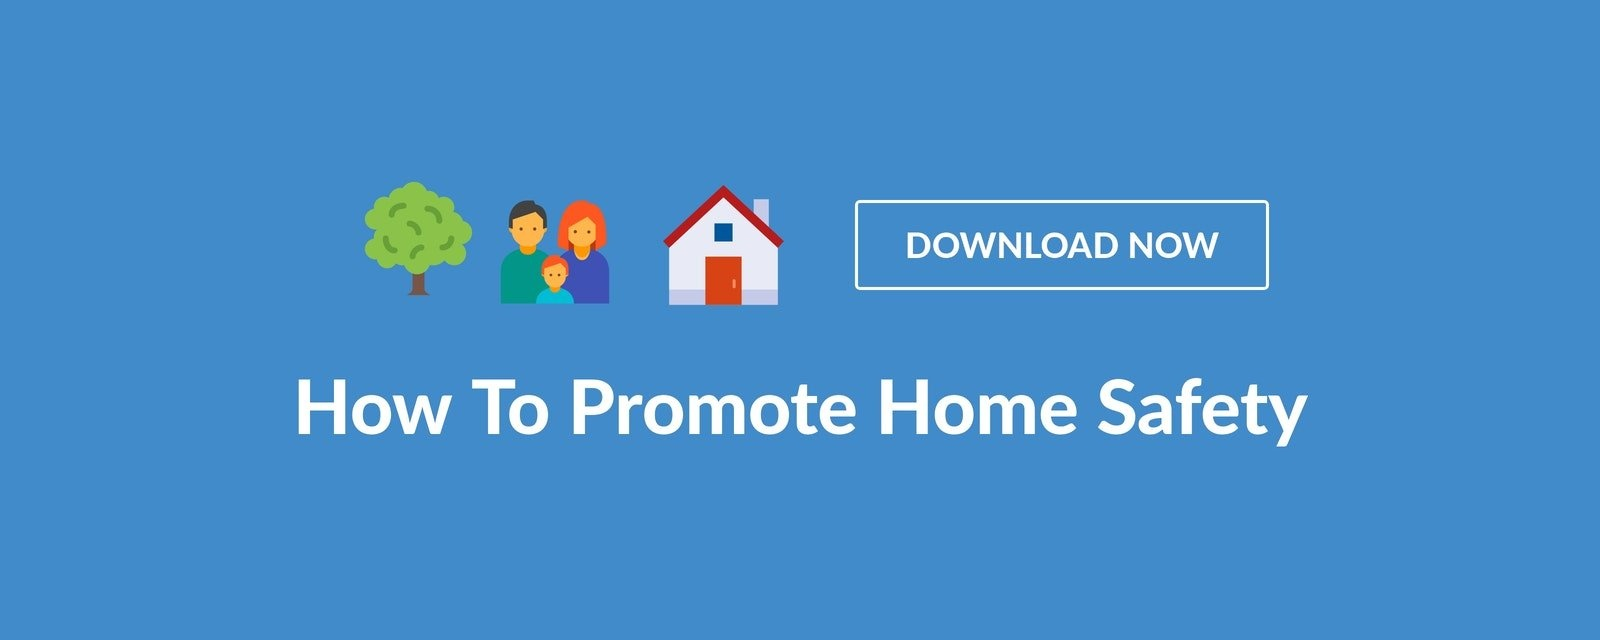 promote home safety